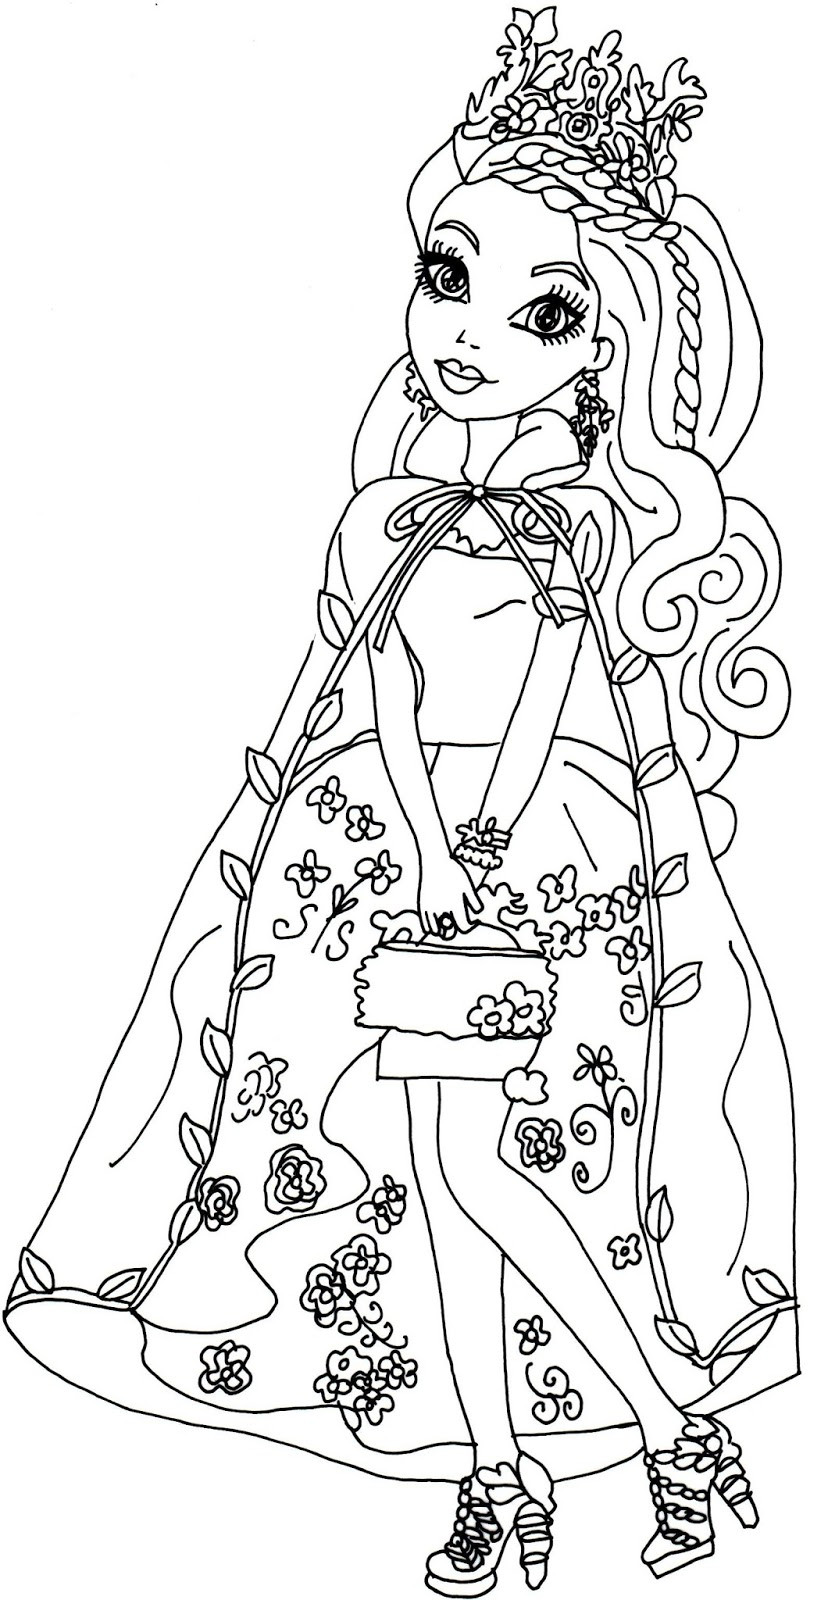 Free Printable Coloring Books For Toddlers  Ever After High Coloring Pages Best Coloring Pages For Kids